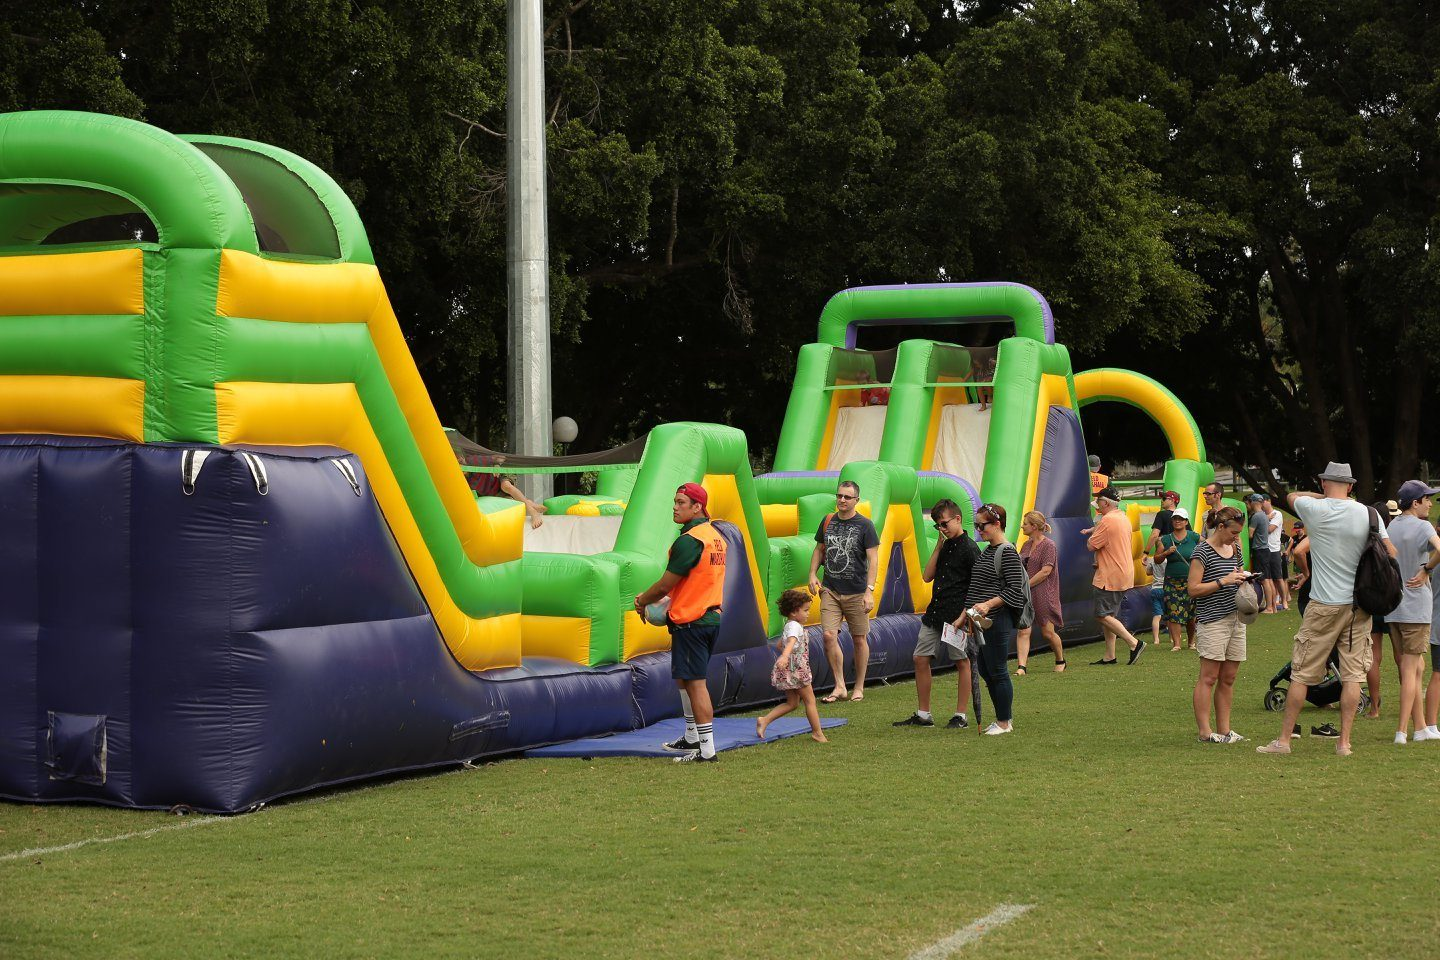 30 Metre Obstacle Course Jumping Castle